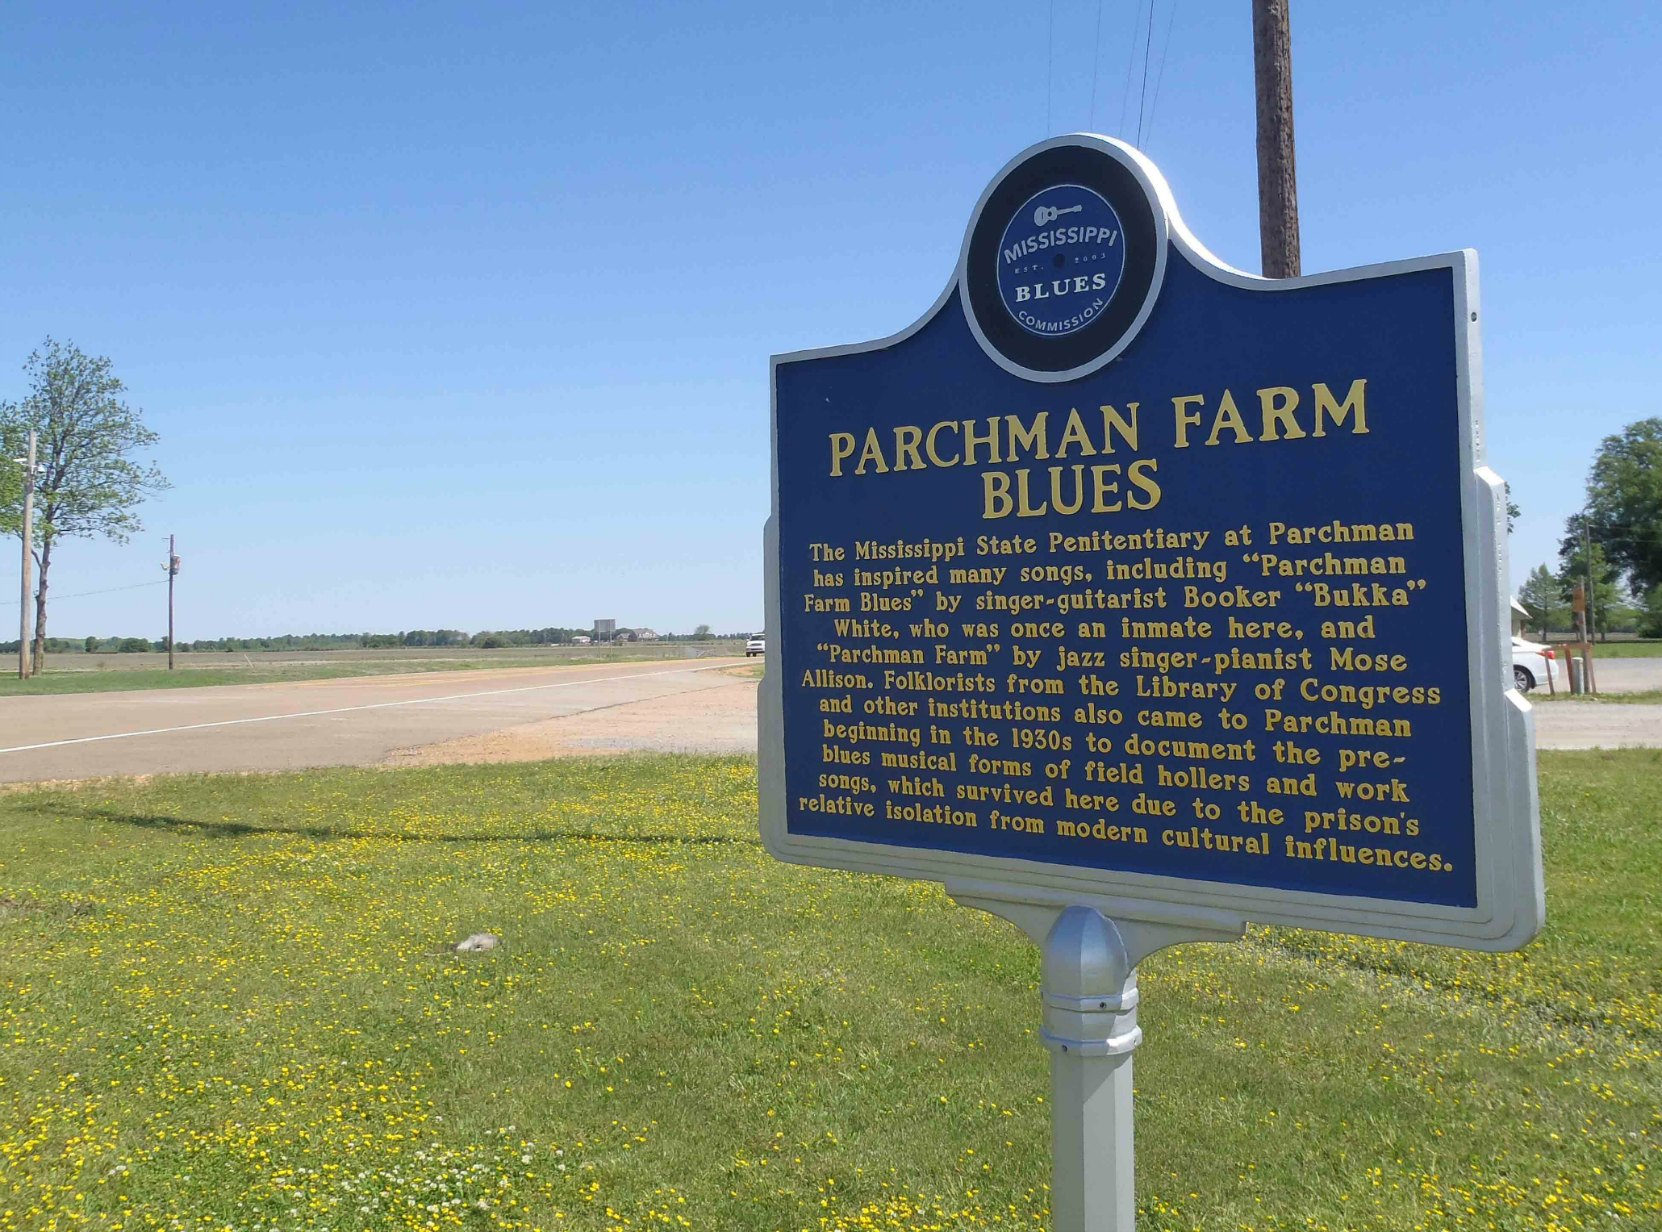 Miississippi Blues Trail marker for Parchman Farm Blues near the main gate of the Mississippi State Penitentiary